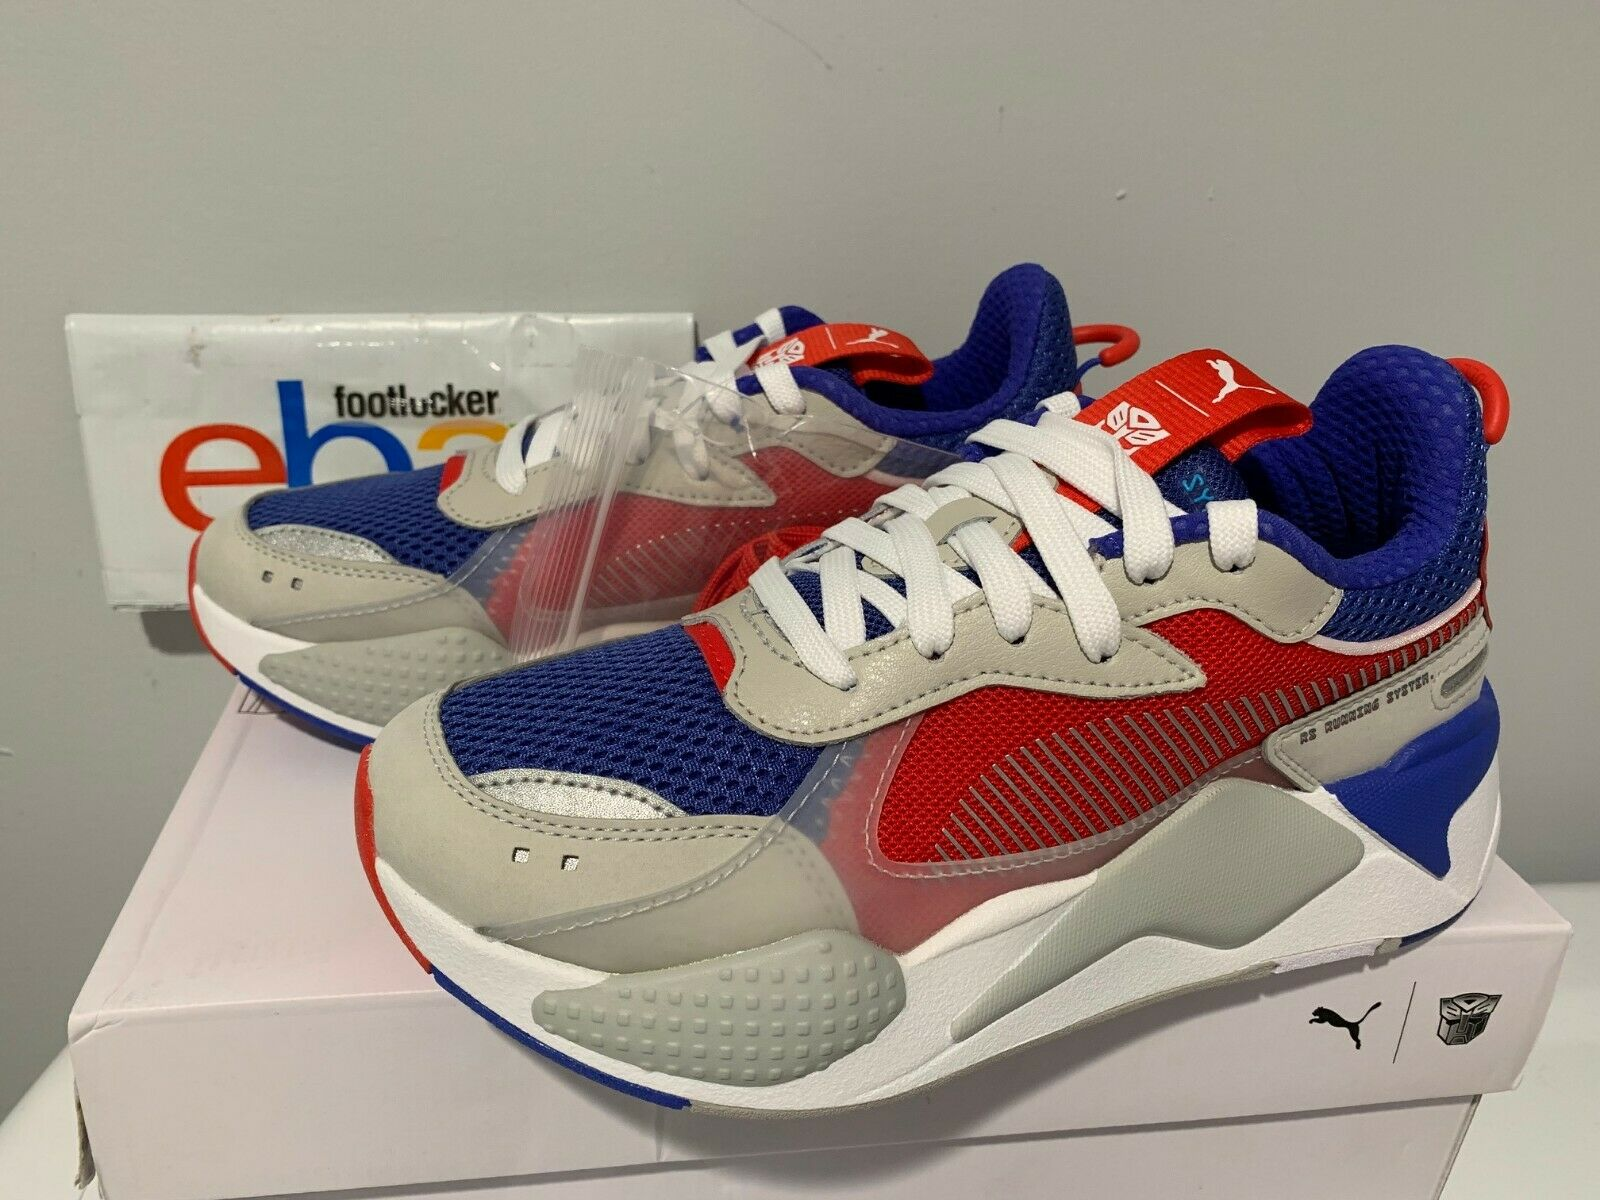 PUMA RS-X TRANSFORMERS Pack Optimus Prime bluee Red White 370701-02 Size 4Y-13